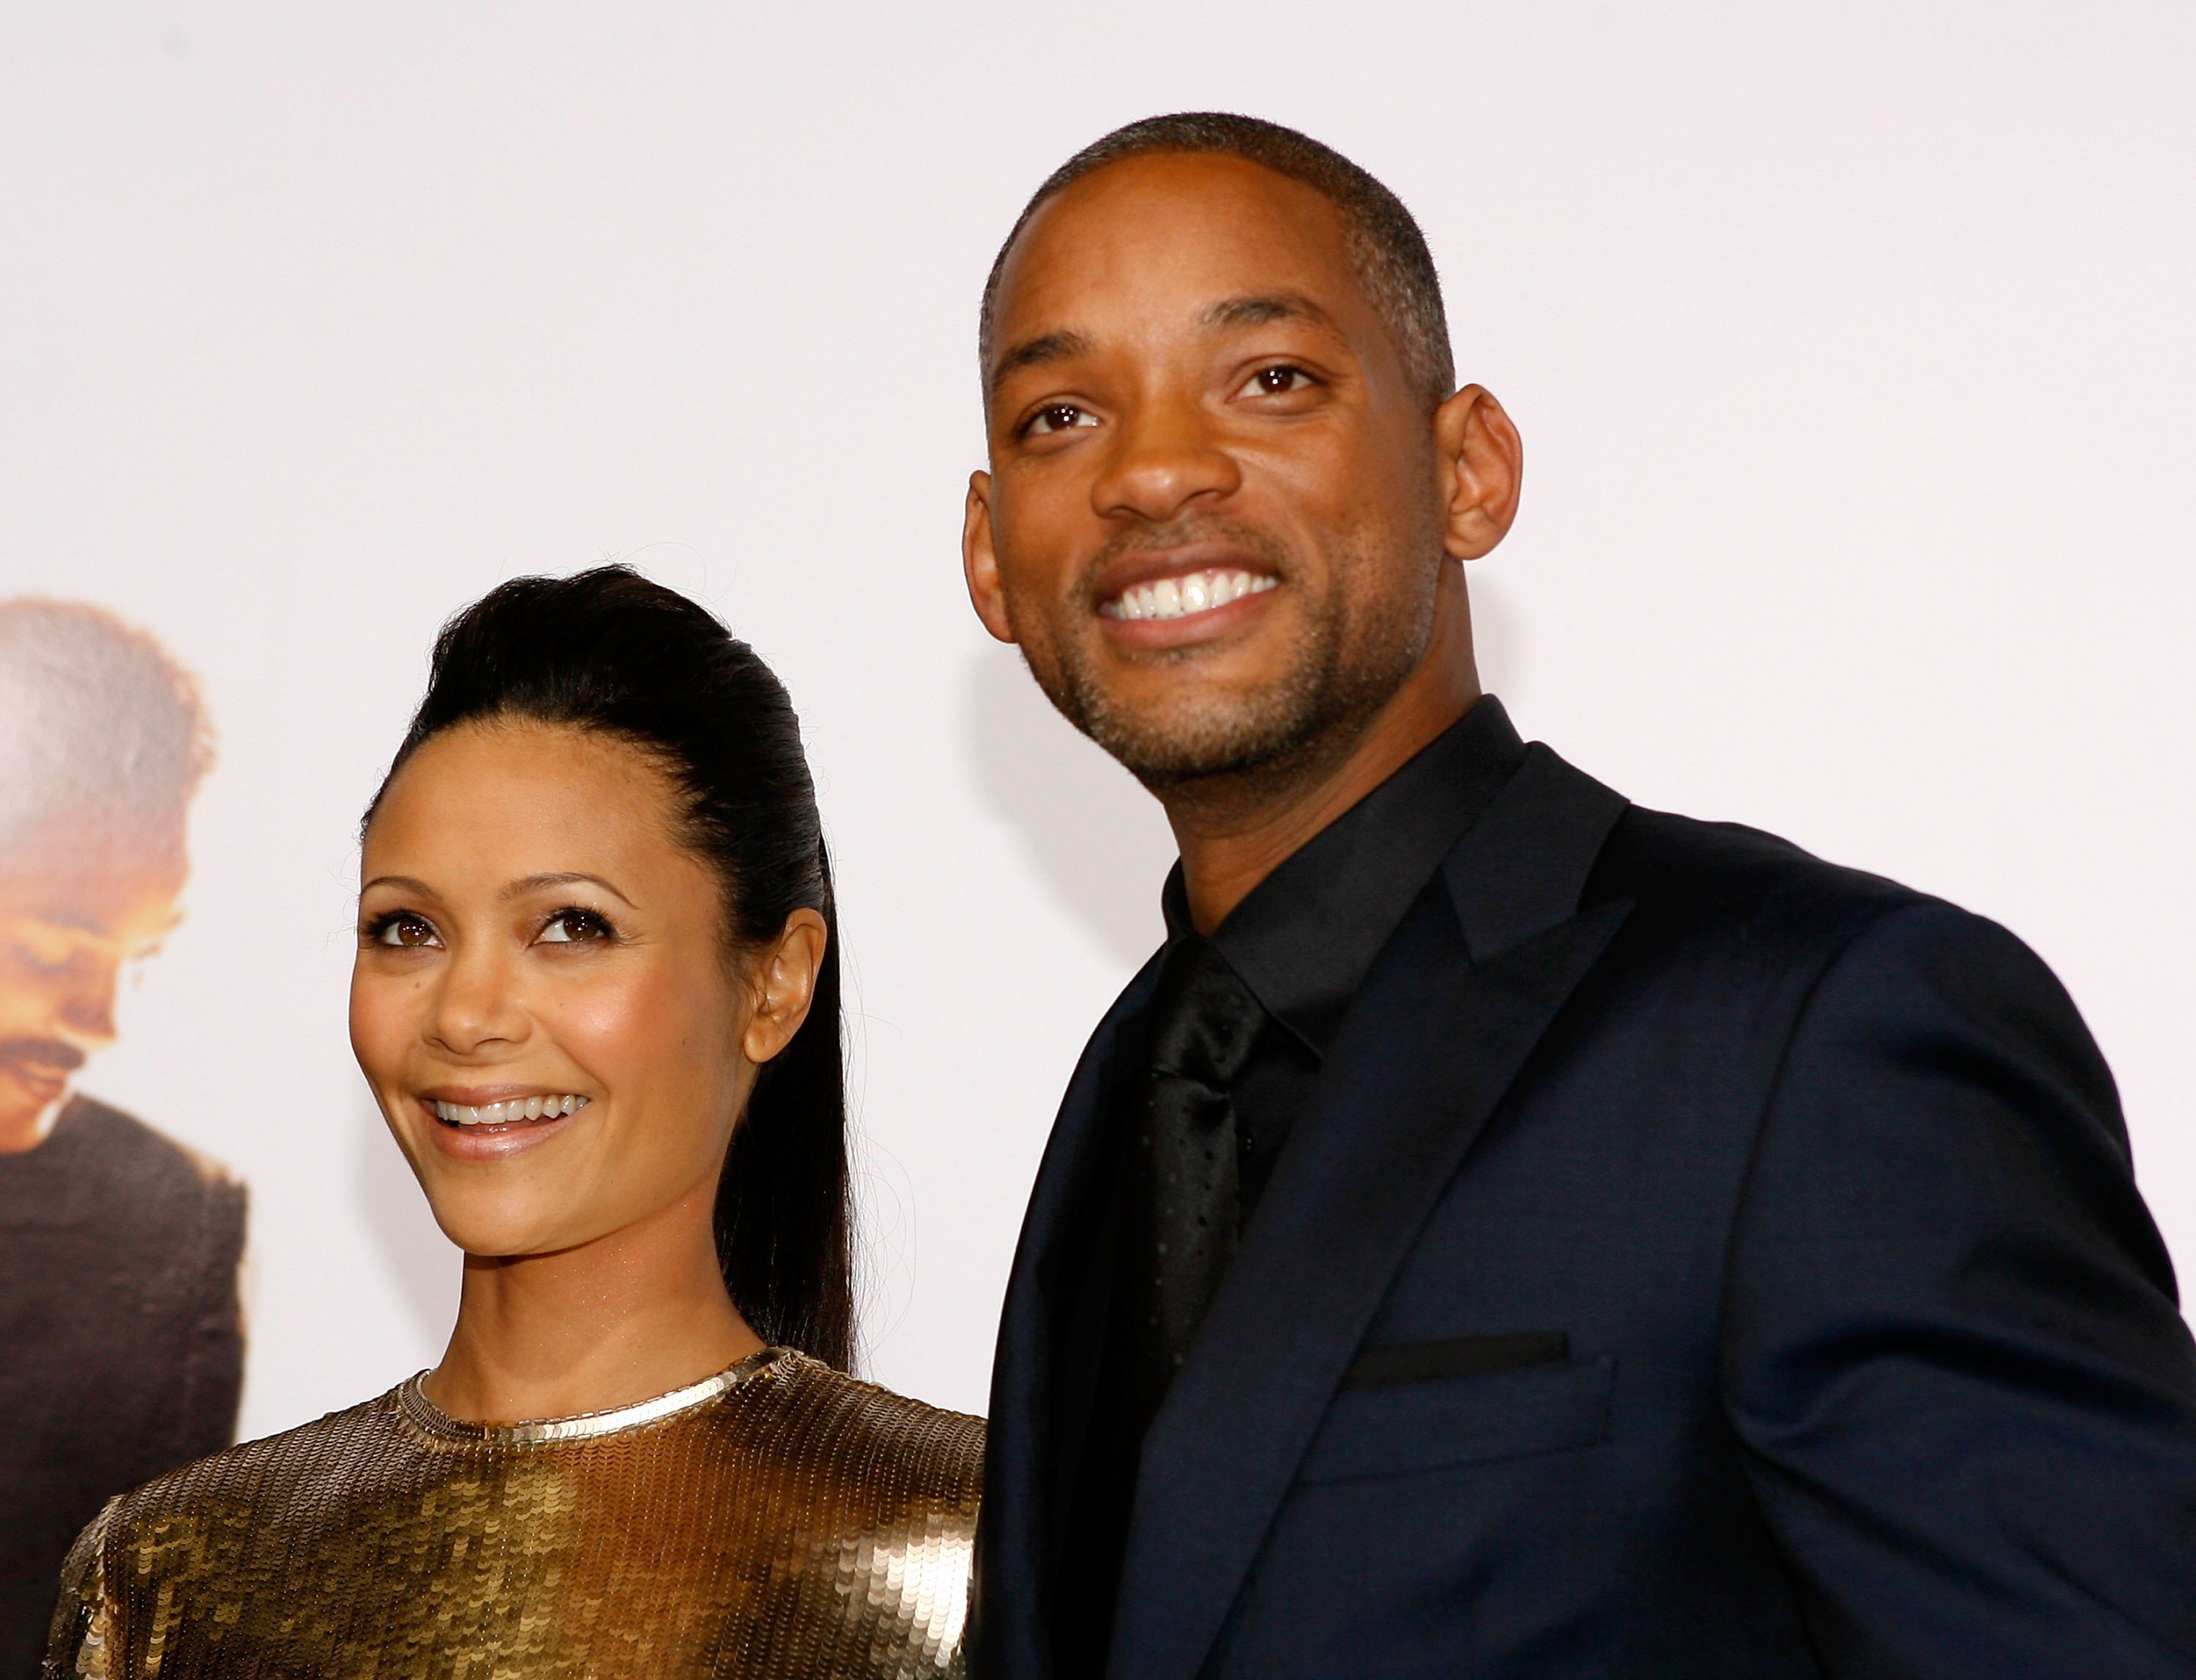 Thandie Newton And Will Smith At The 2006 Premiere Of The Pursuit